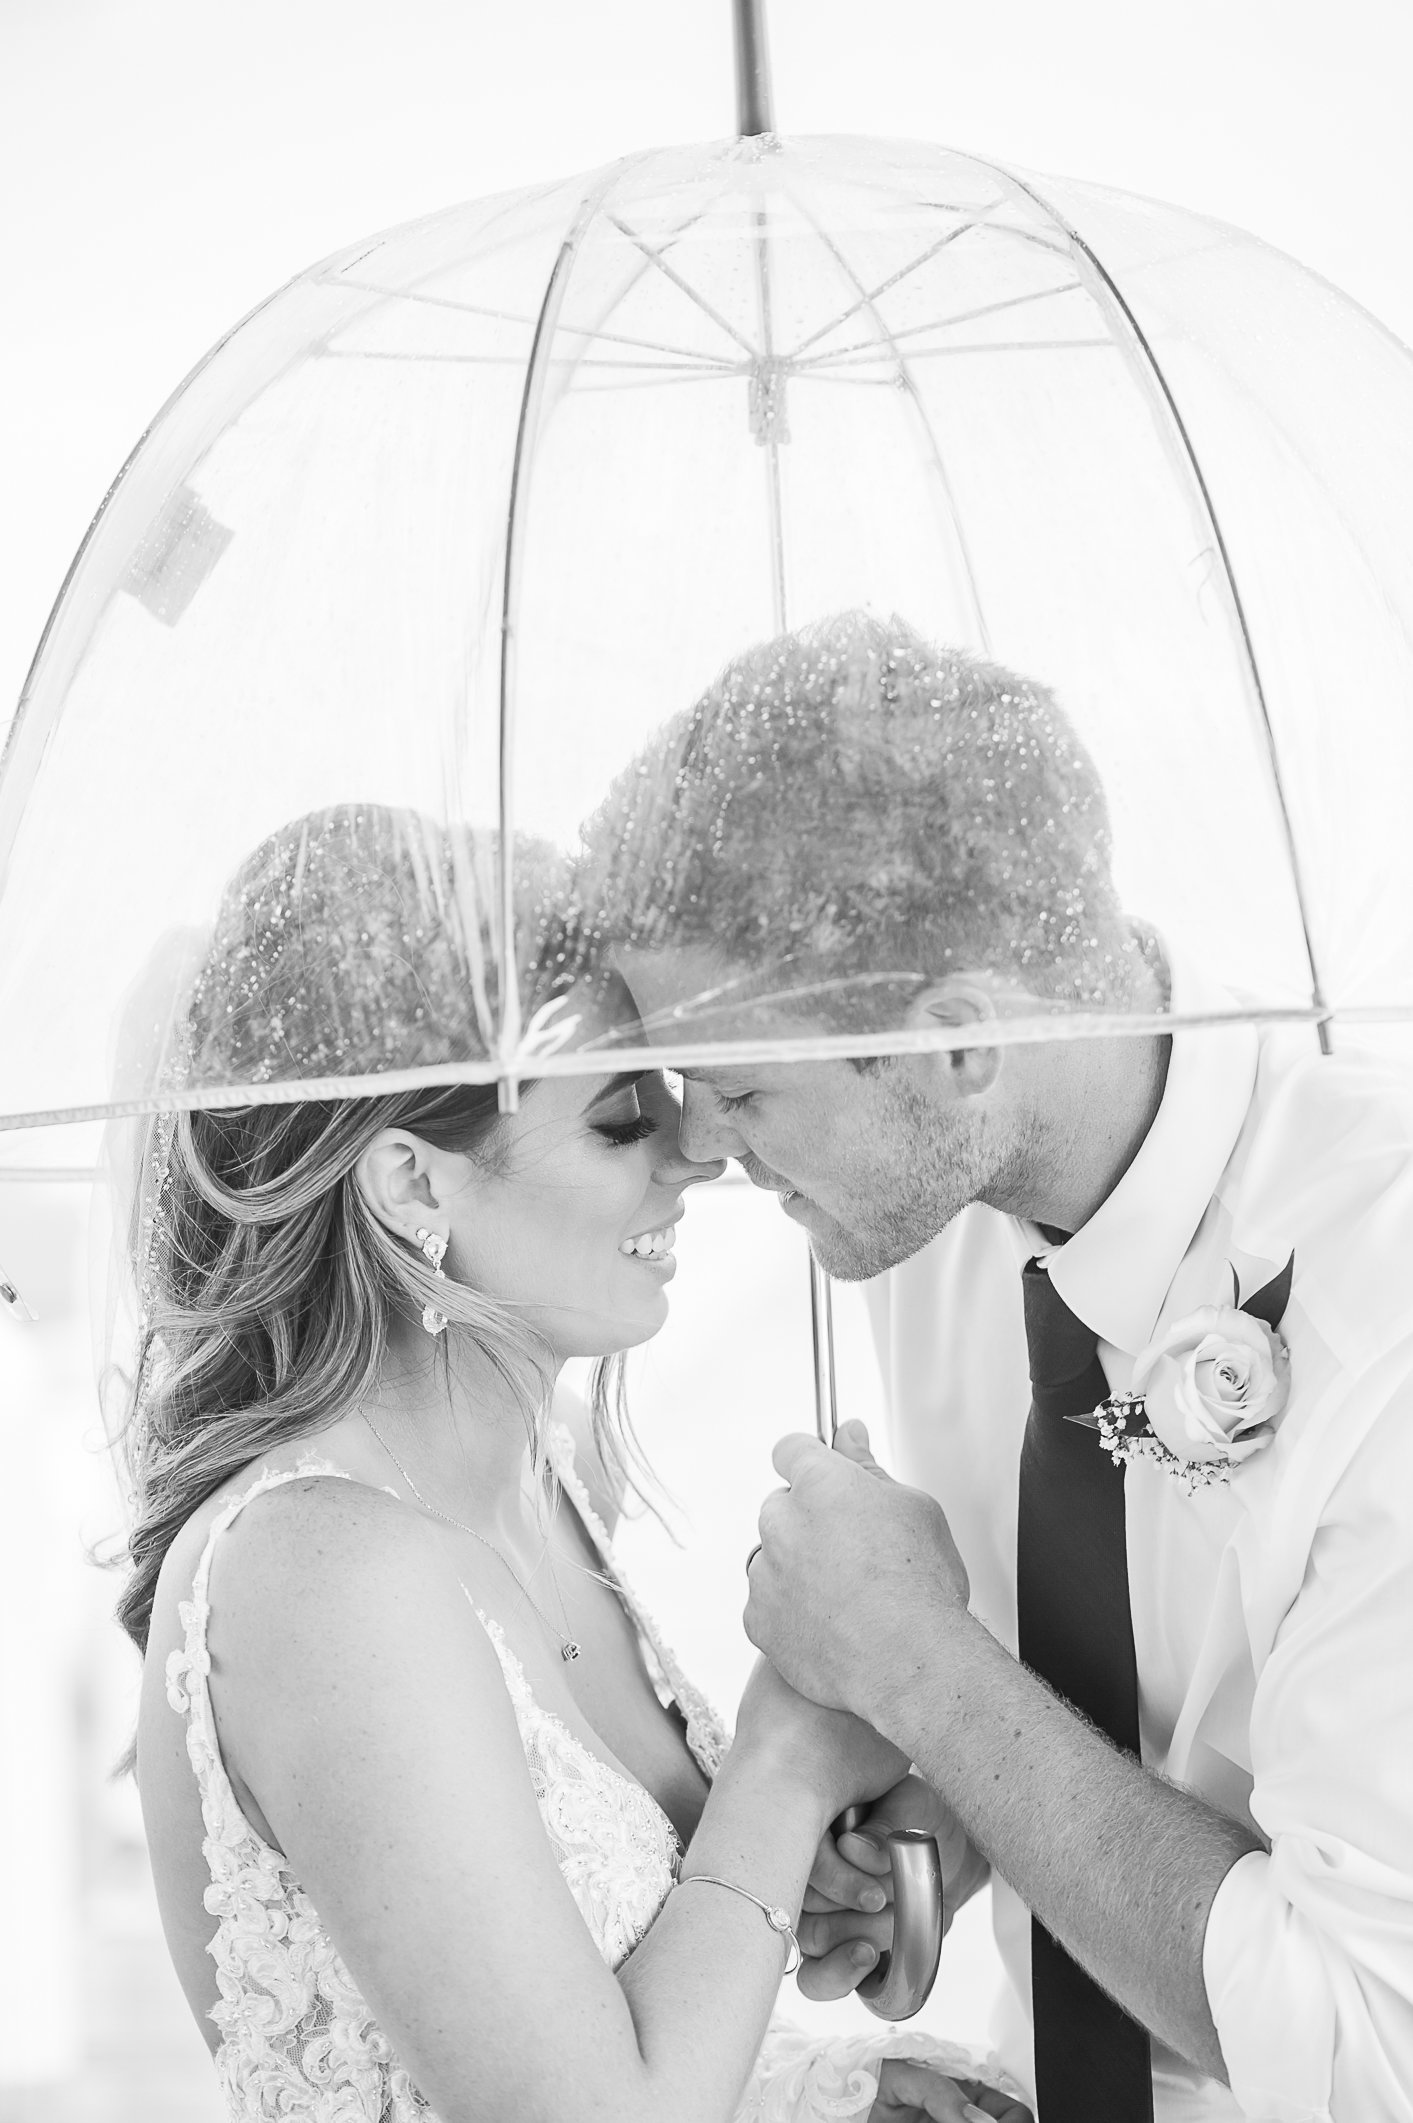 Rainy Wedding - Cheeca Wedding - Palm Beach Wedding Photography by Palm Beach Photography, Inc.